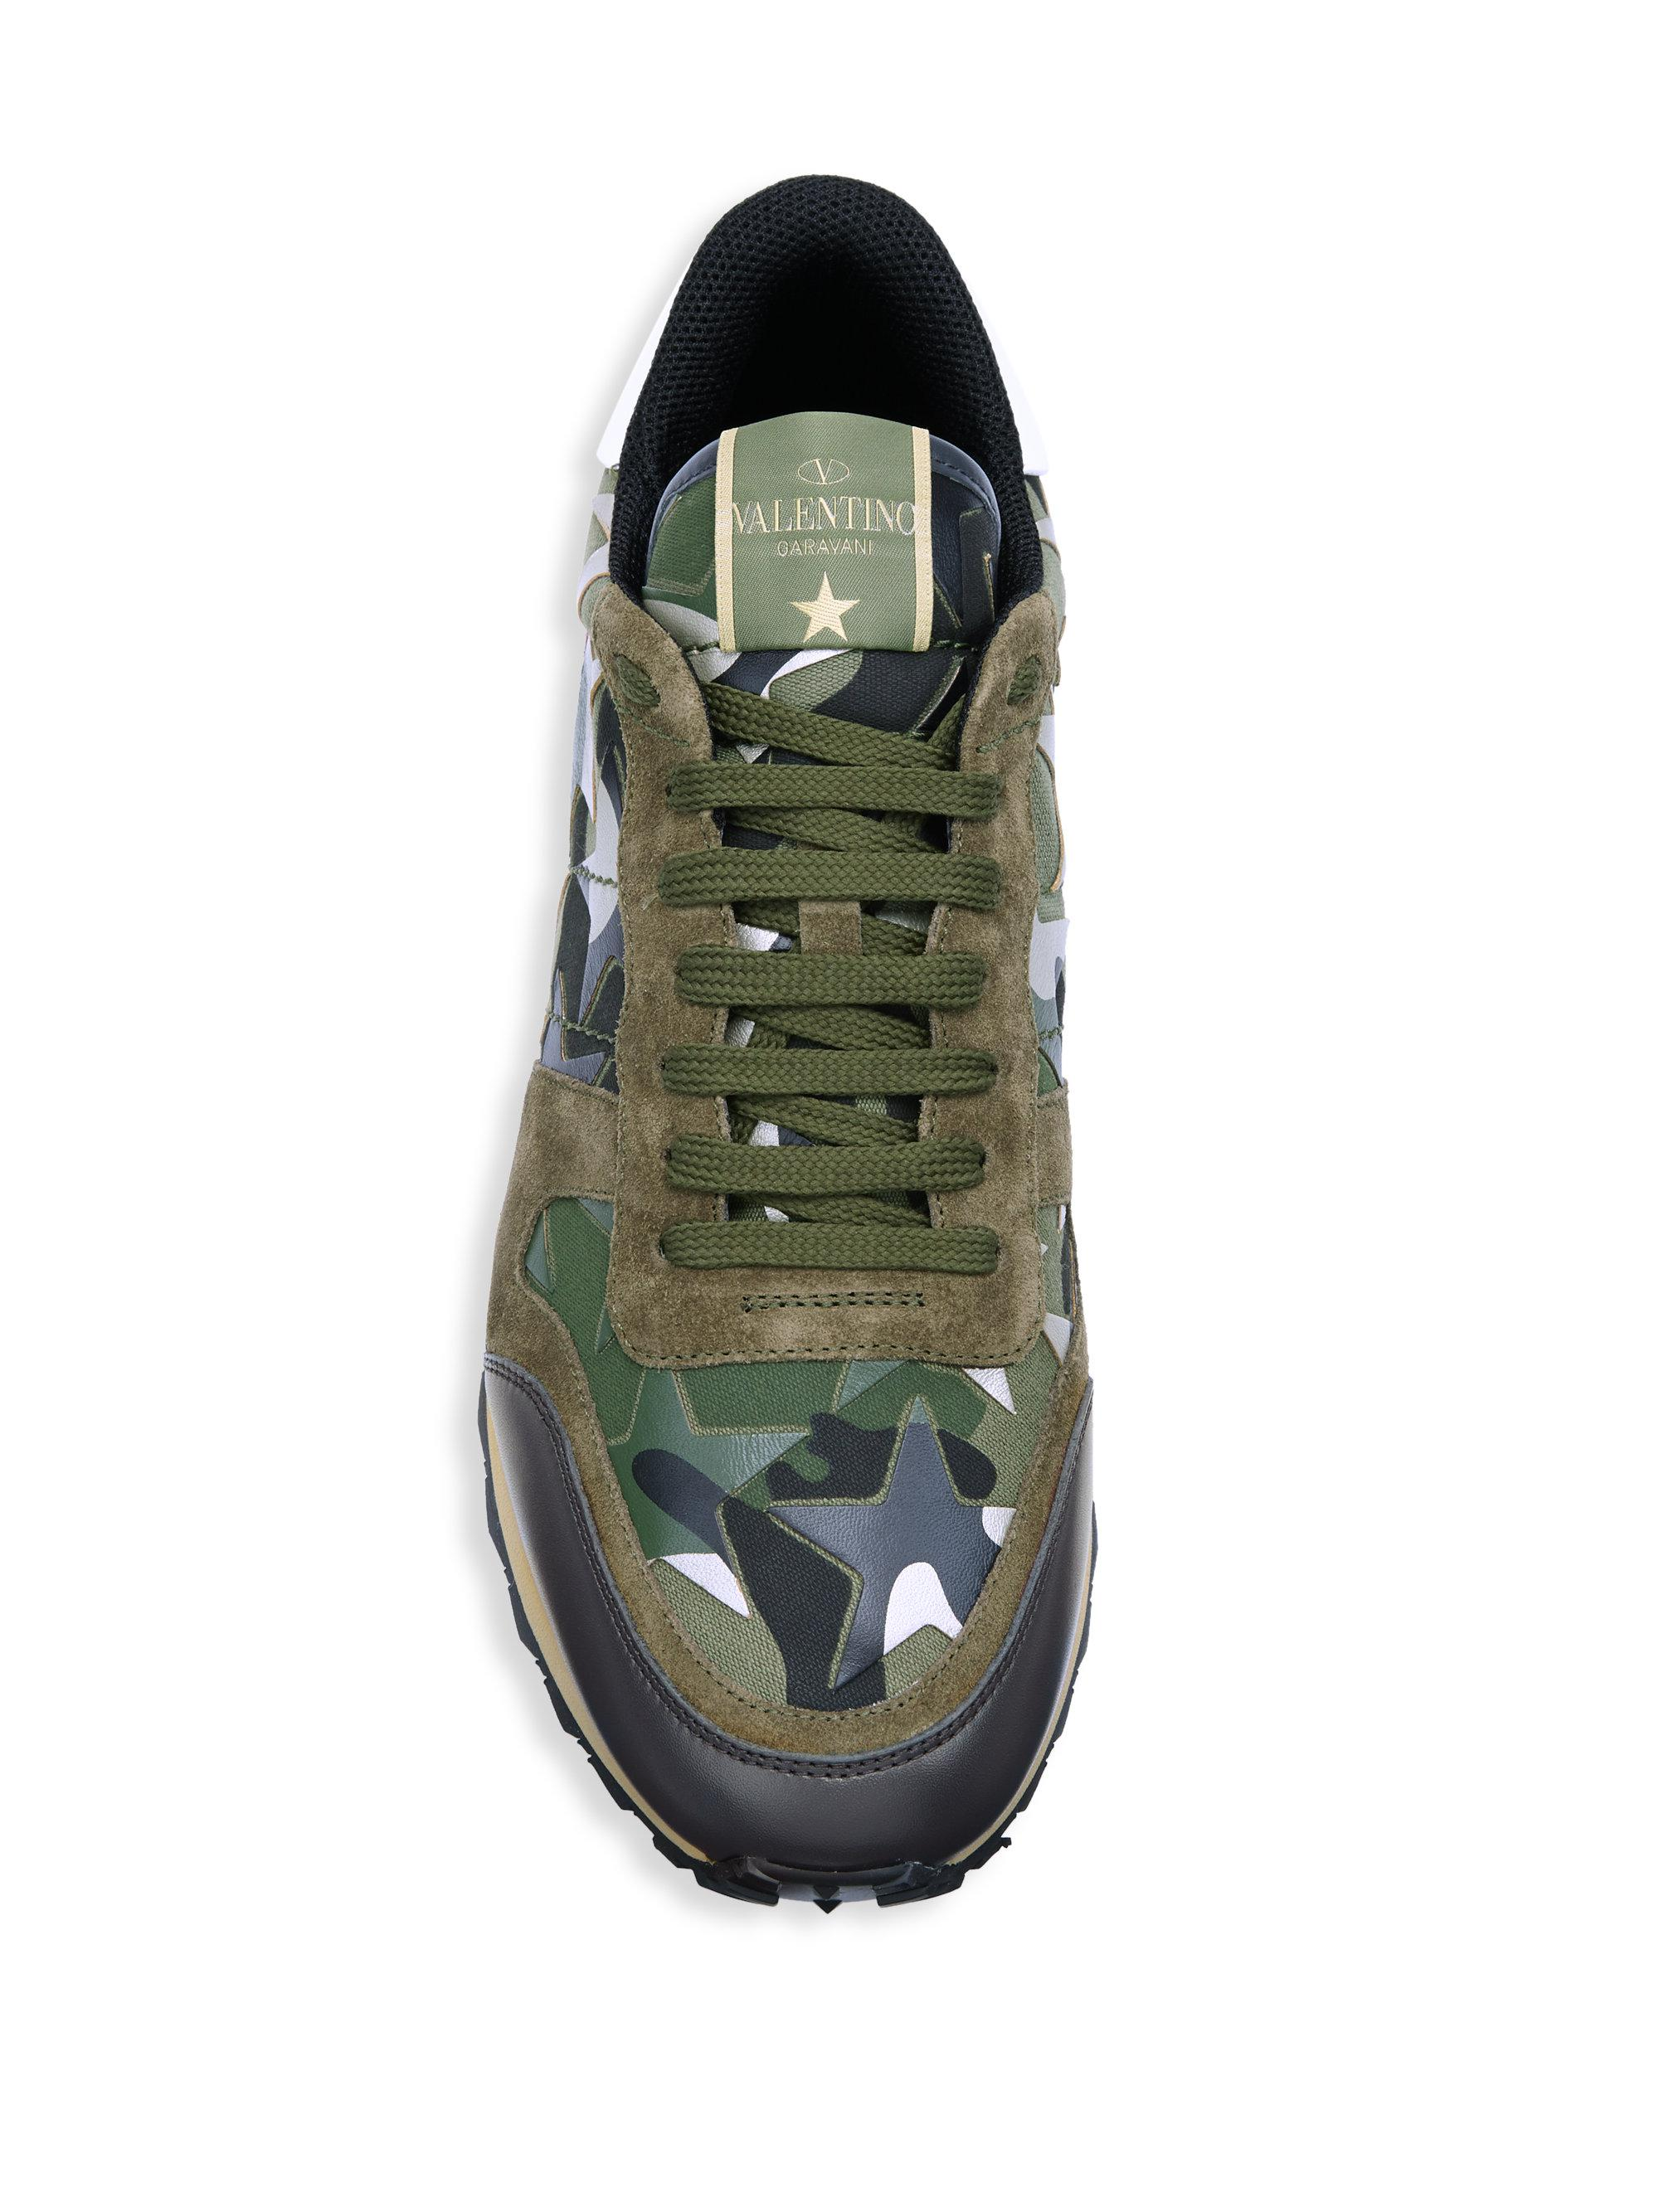 68a46f59c1e48b Lyst - Valentino Star Rock Camouflage Running Shoes in Green for Men